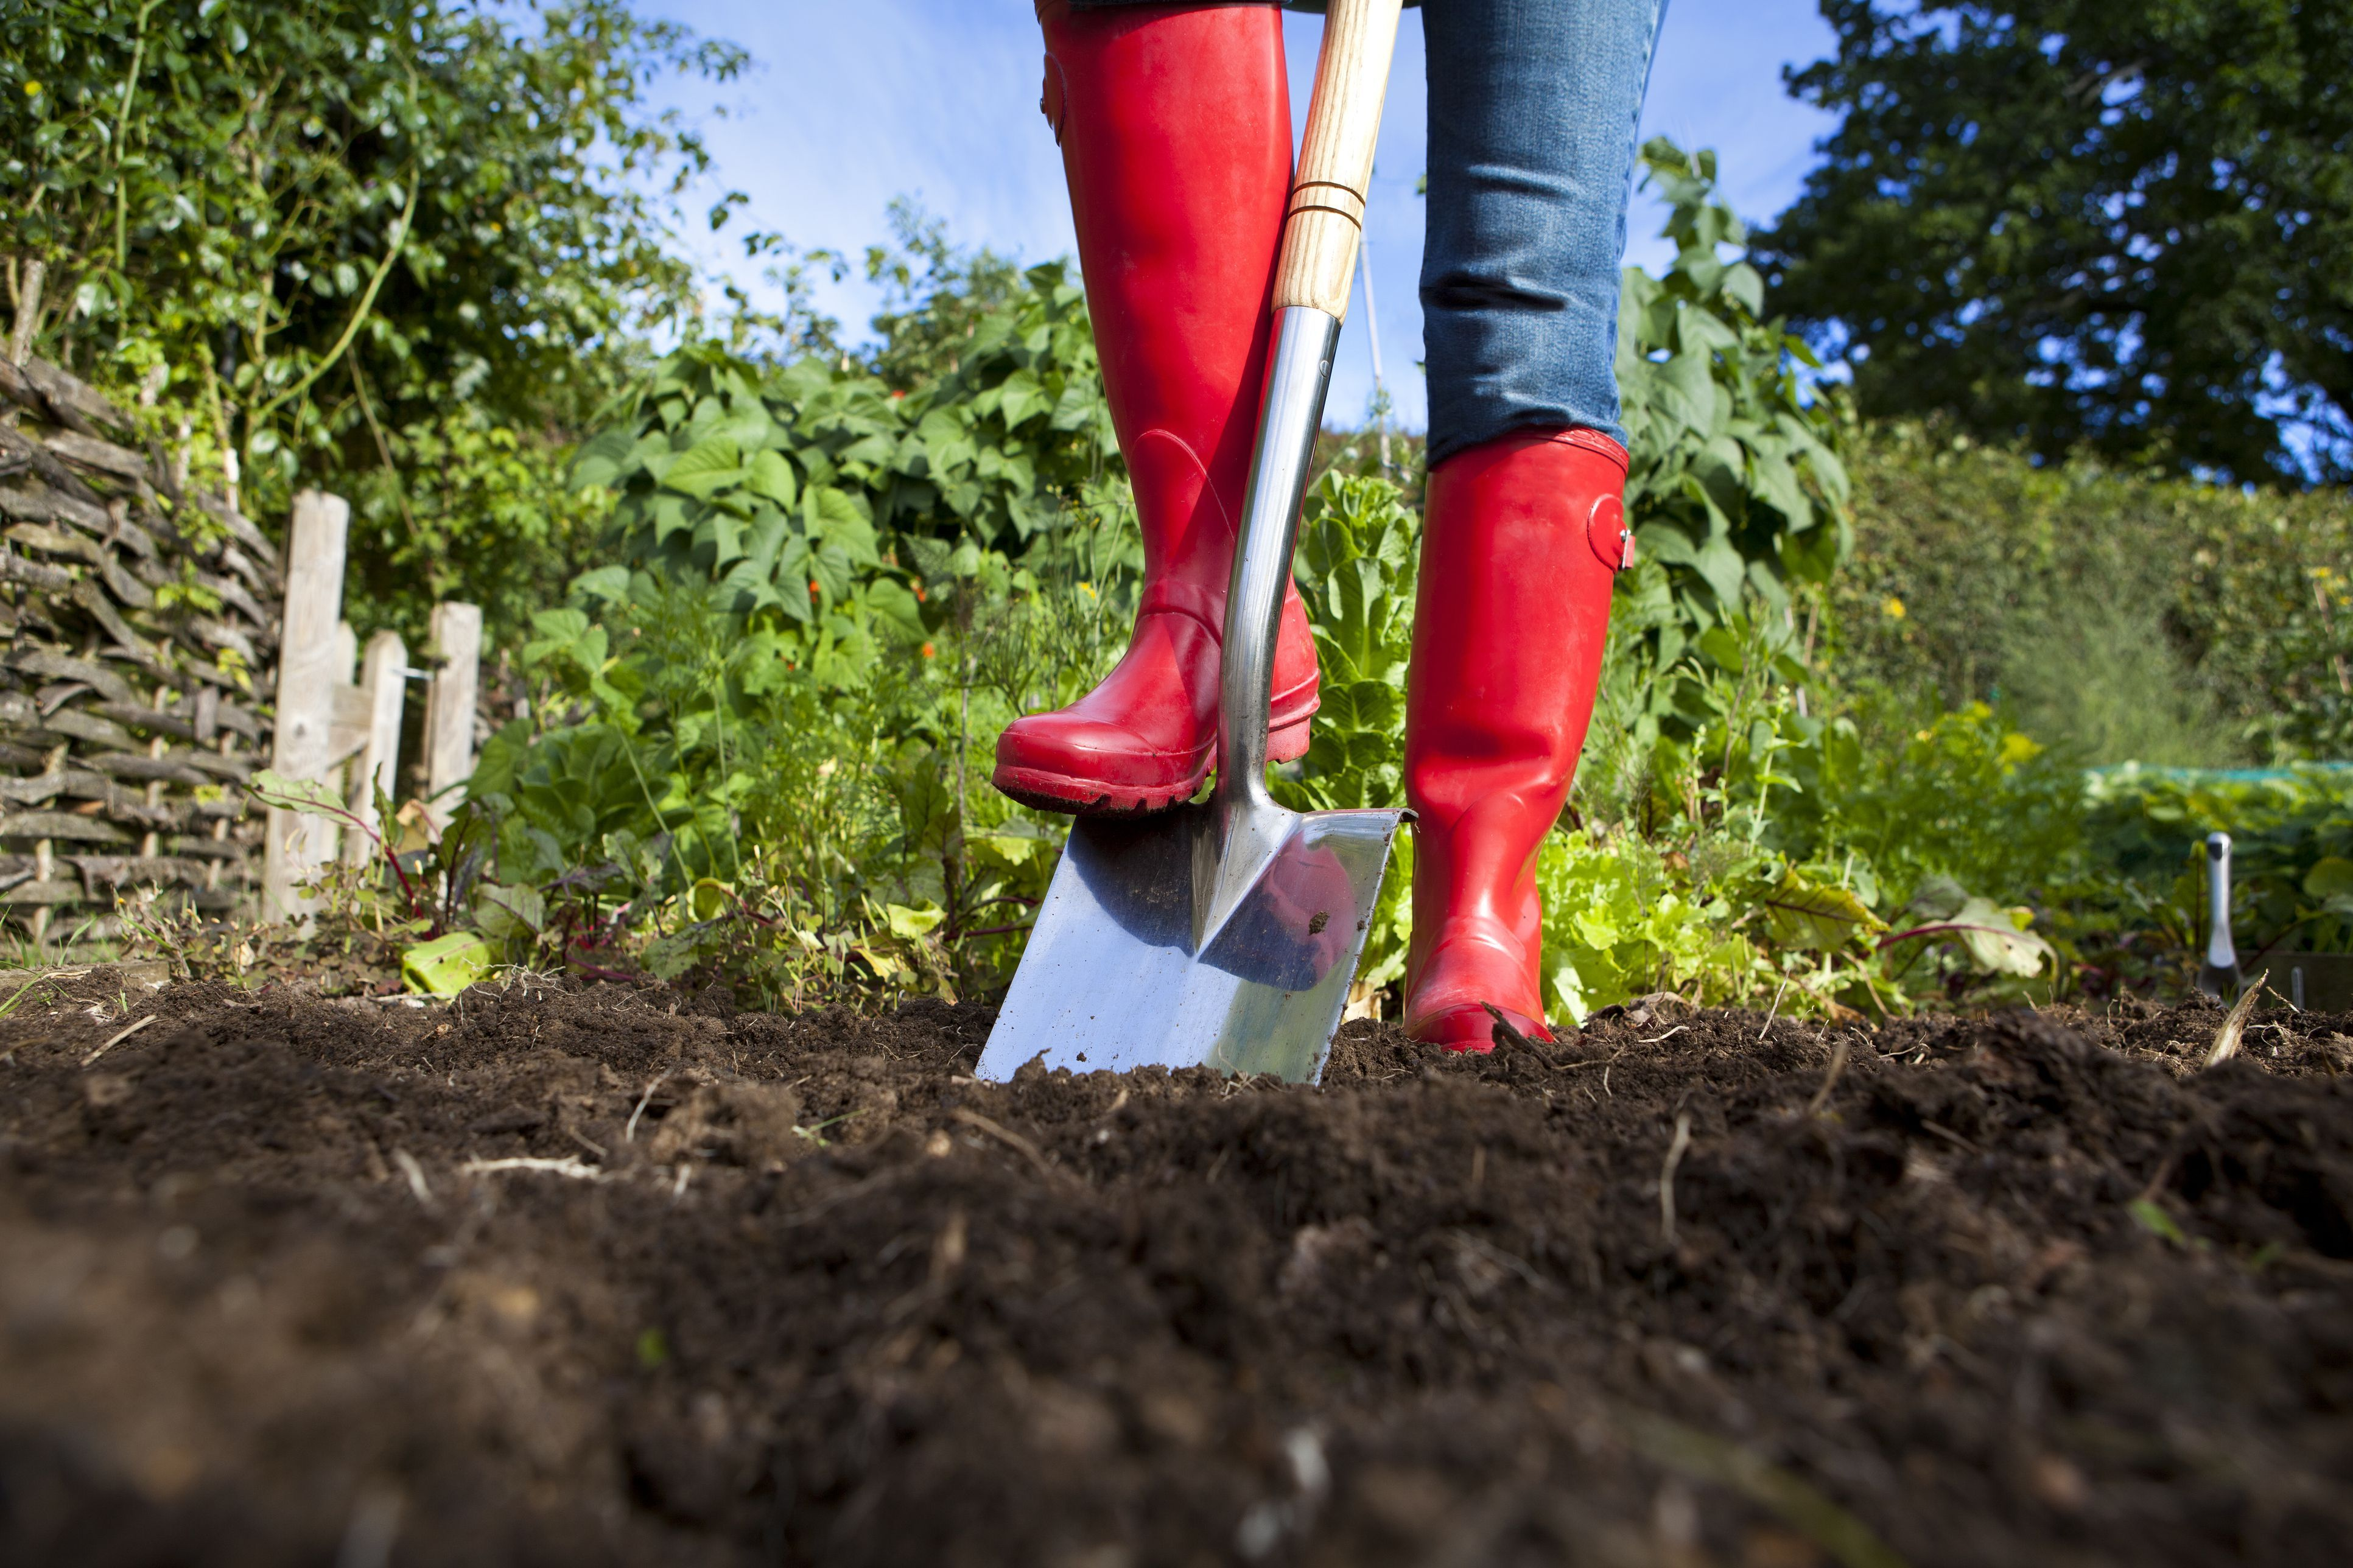 b82fe5c76d61e656c6fbcae23dcebc87 - Is Composted Manure Safe For Vegetable Gardens